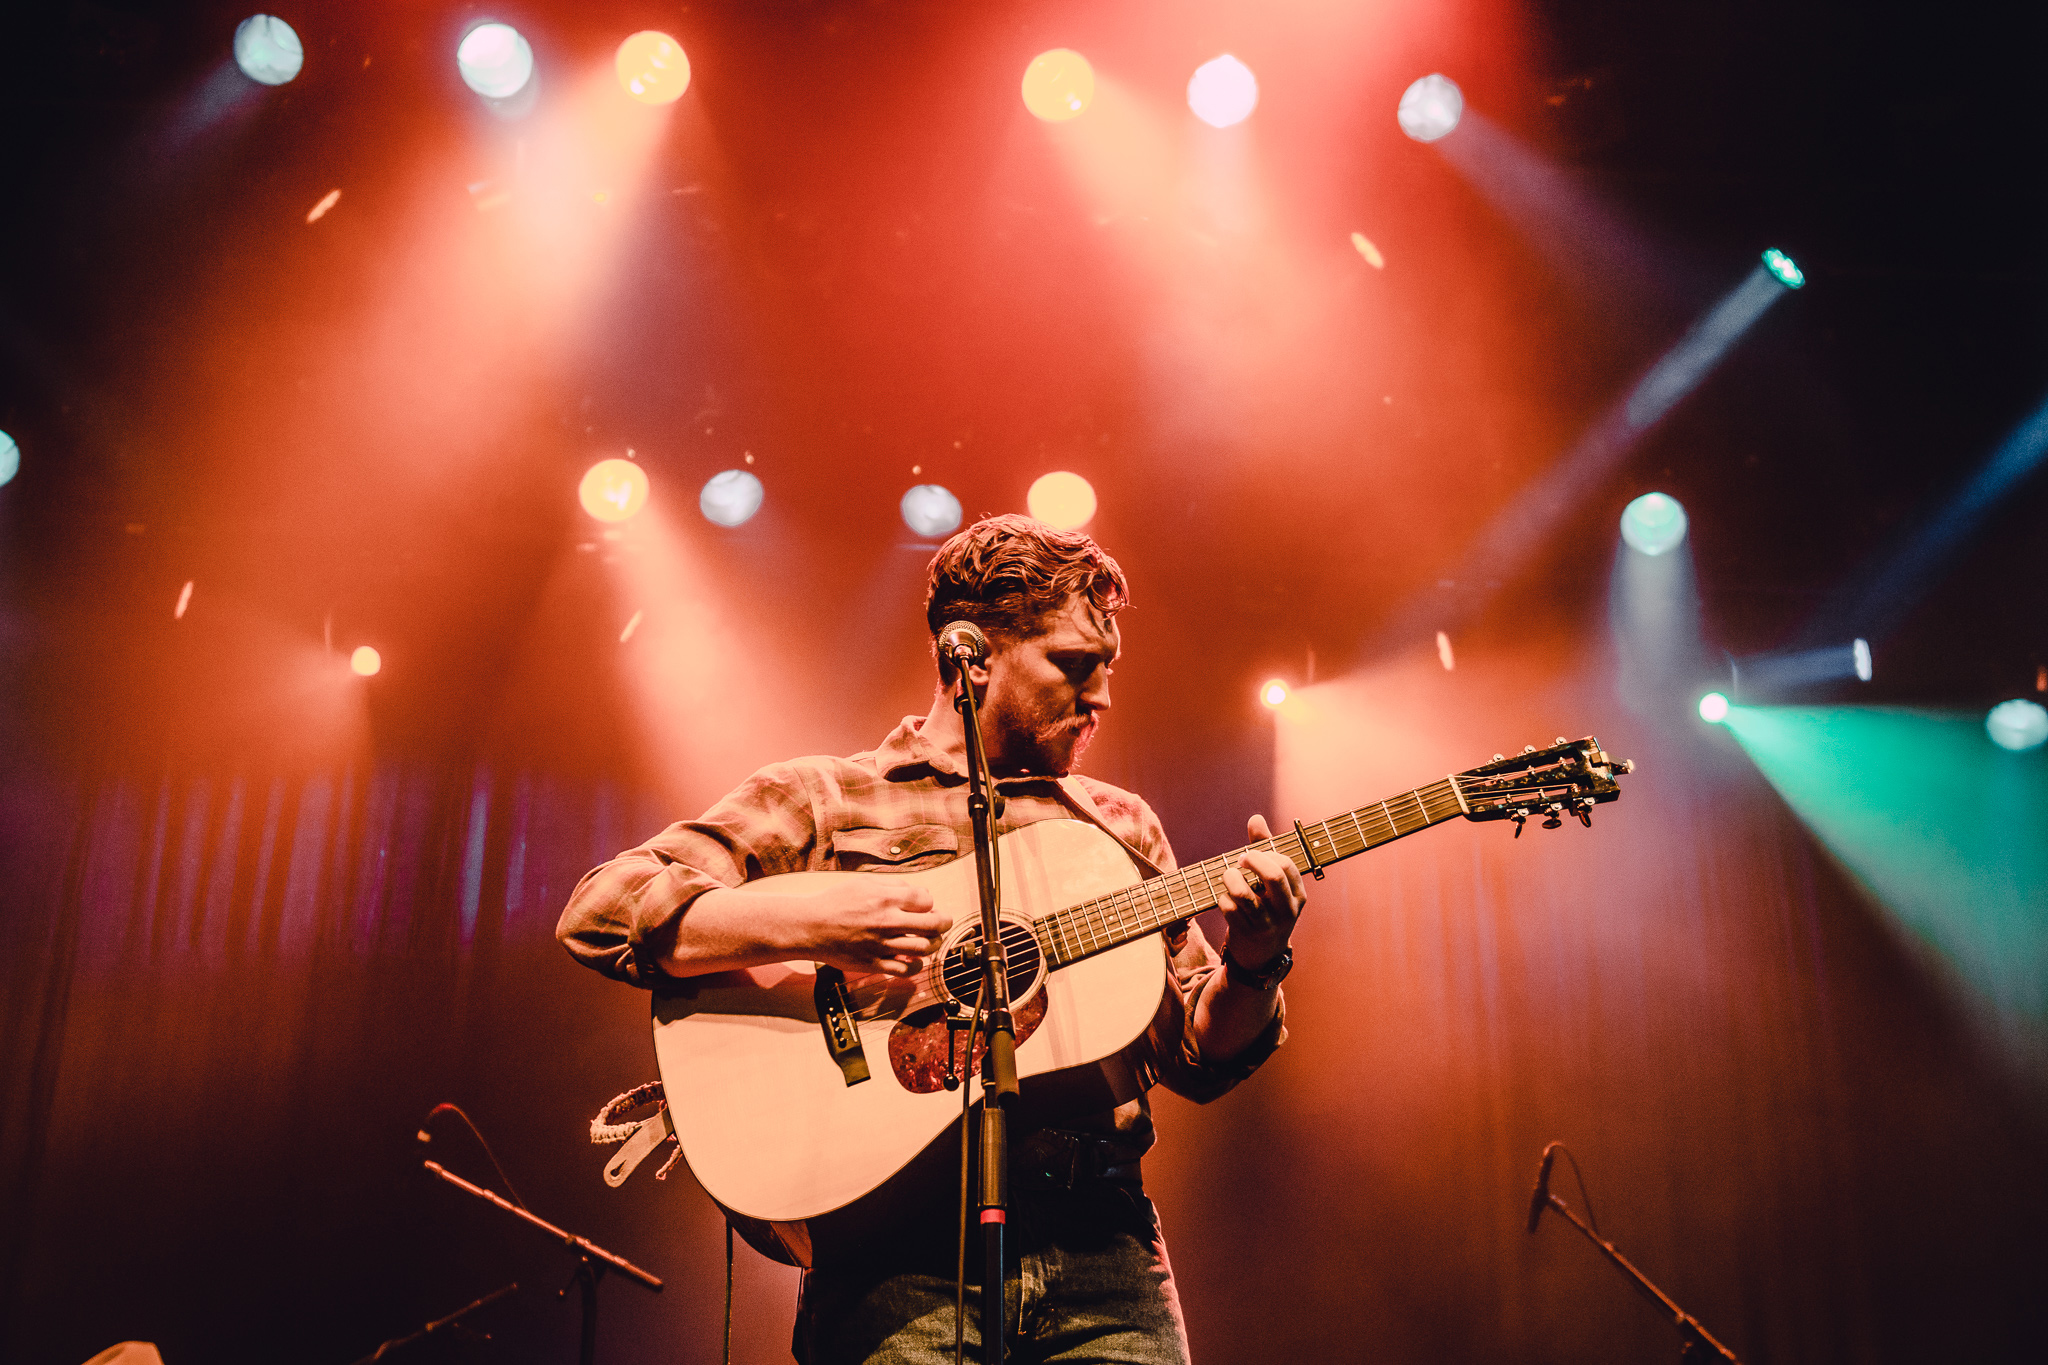 Tyler Childers playing guitar on stage with dramatic stage lights.